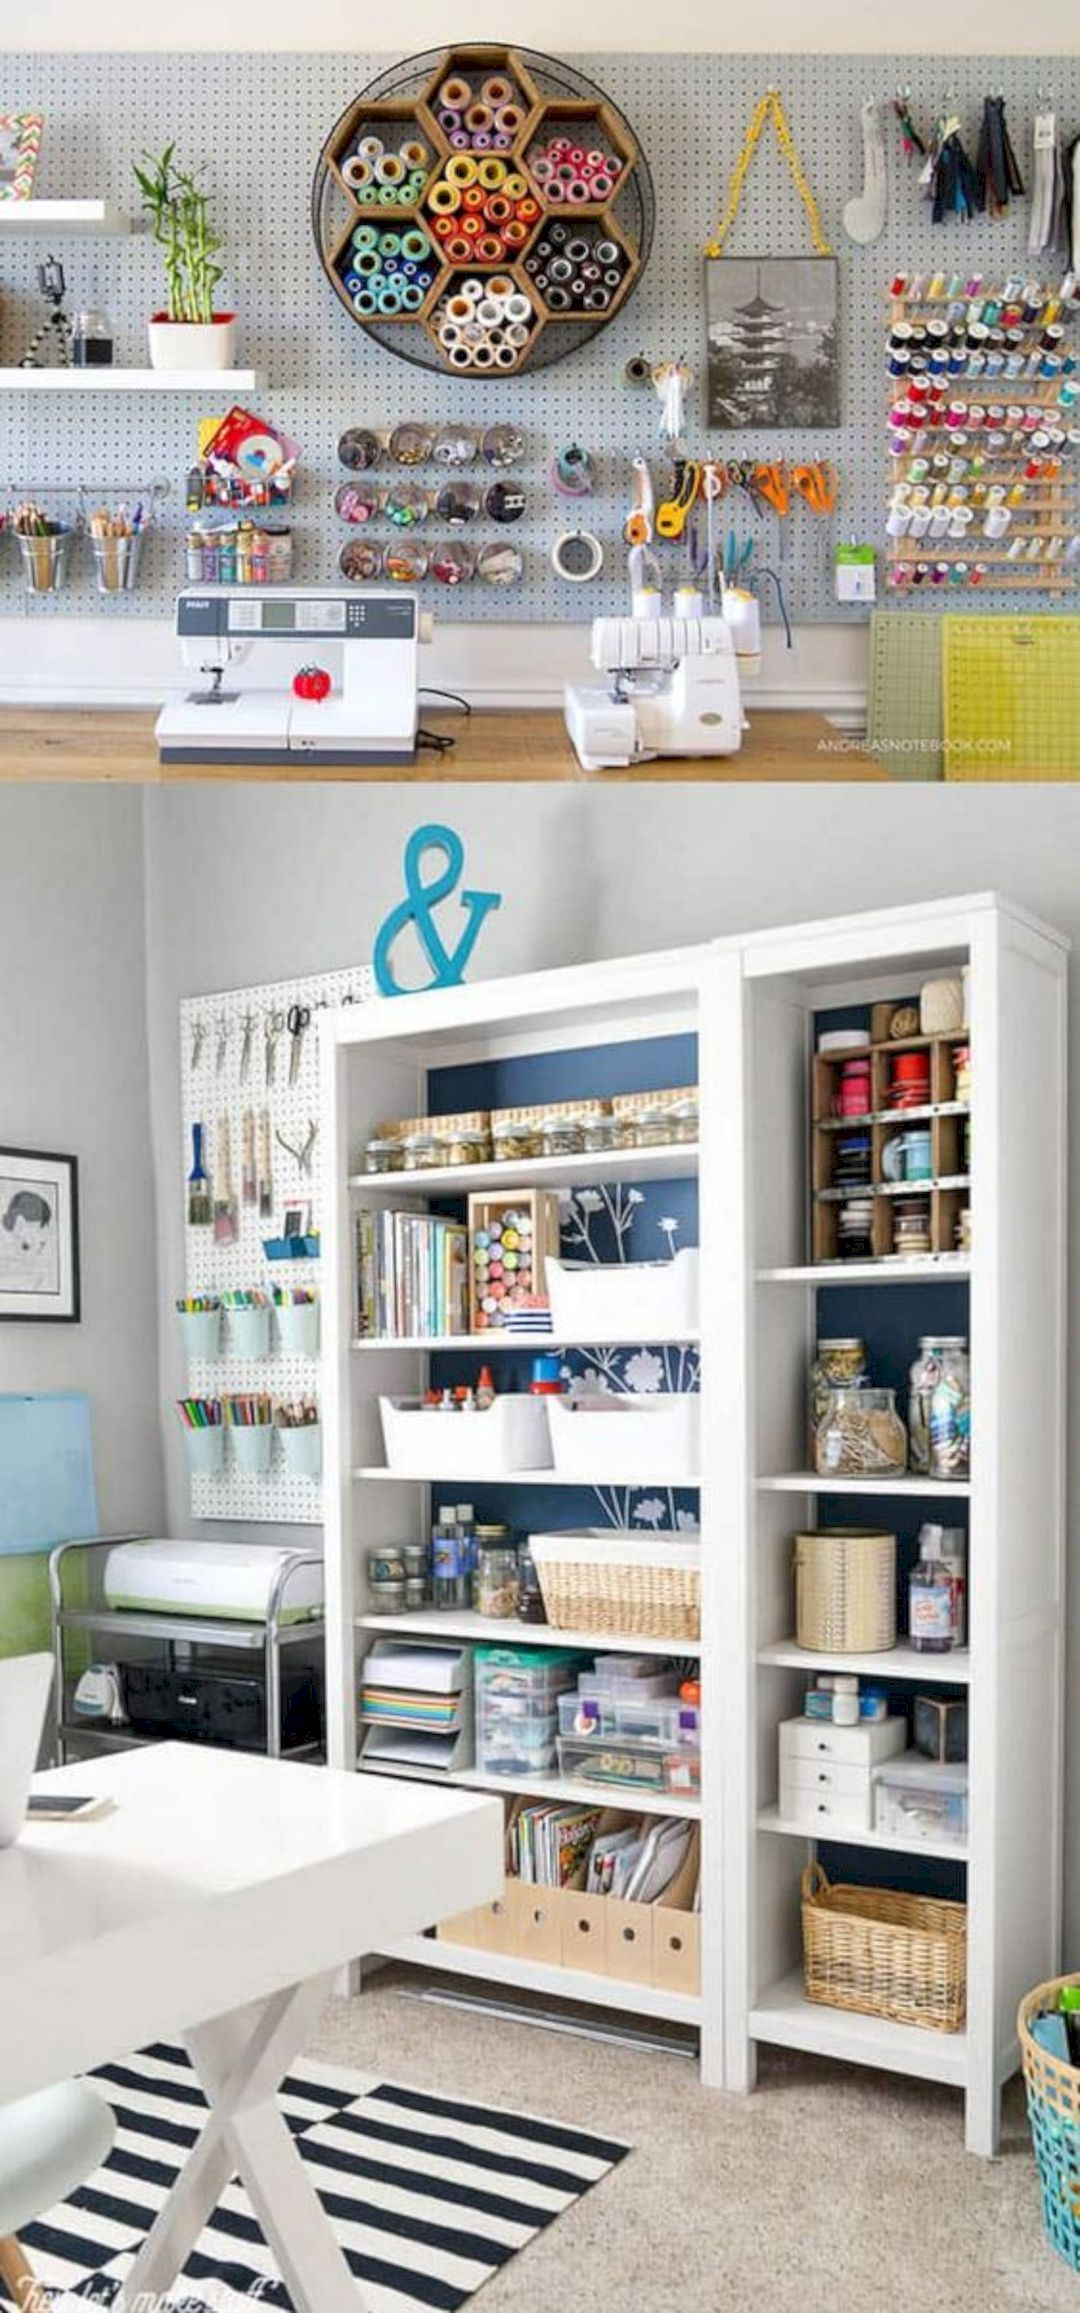 16 Craft Room Furniture Ideas https://www.futuristarchitecture.com/32698-craft-room-furniture-ideas.html